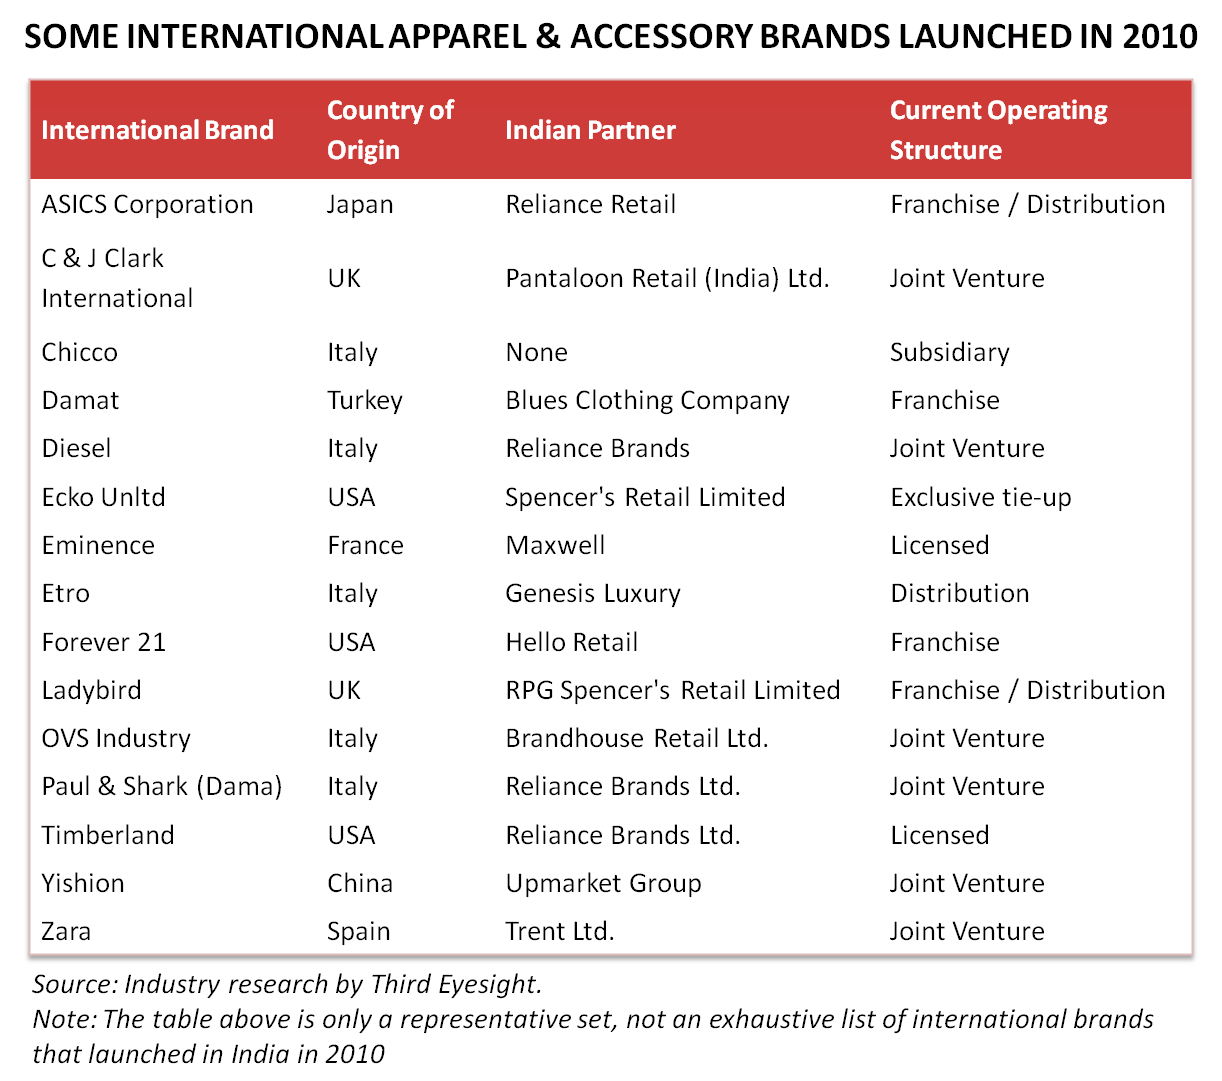 International fashion brands launched in India in 2010